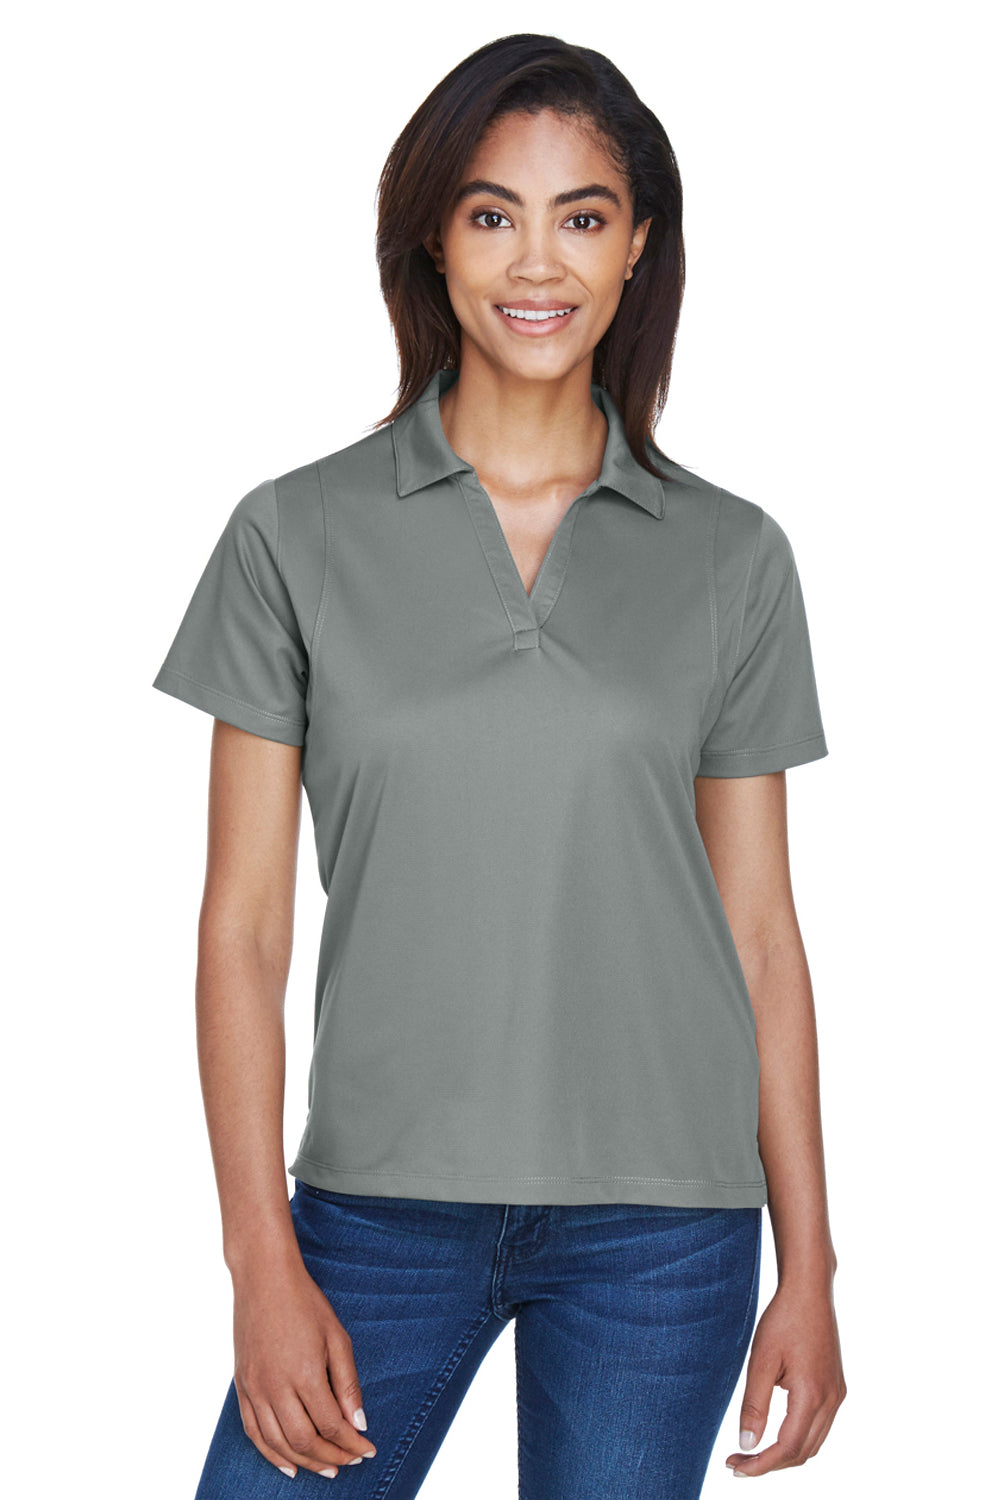 Harriton M354W Womens Moisture Wicking Short Sleeve Polo Shirt Charcoal Grey Front